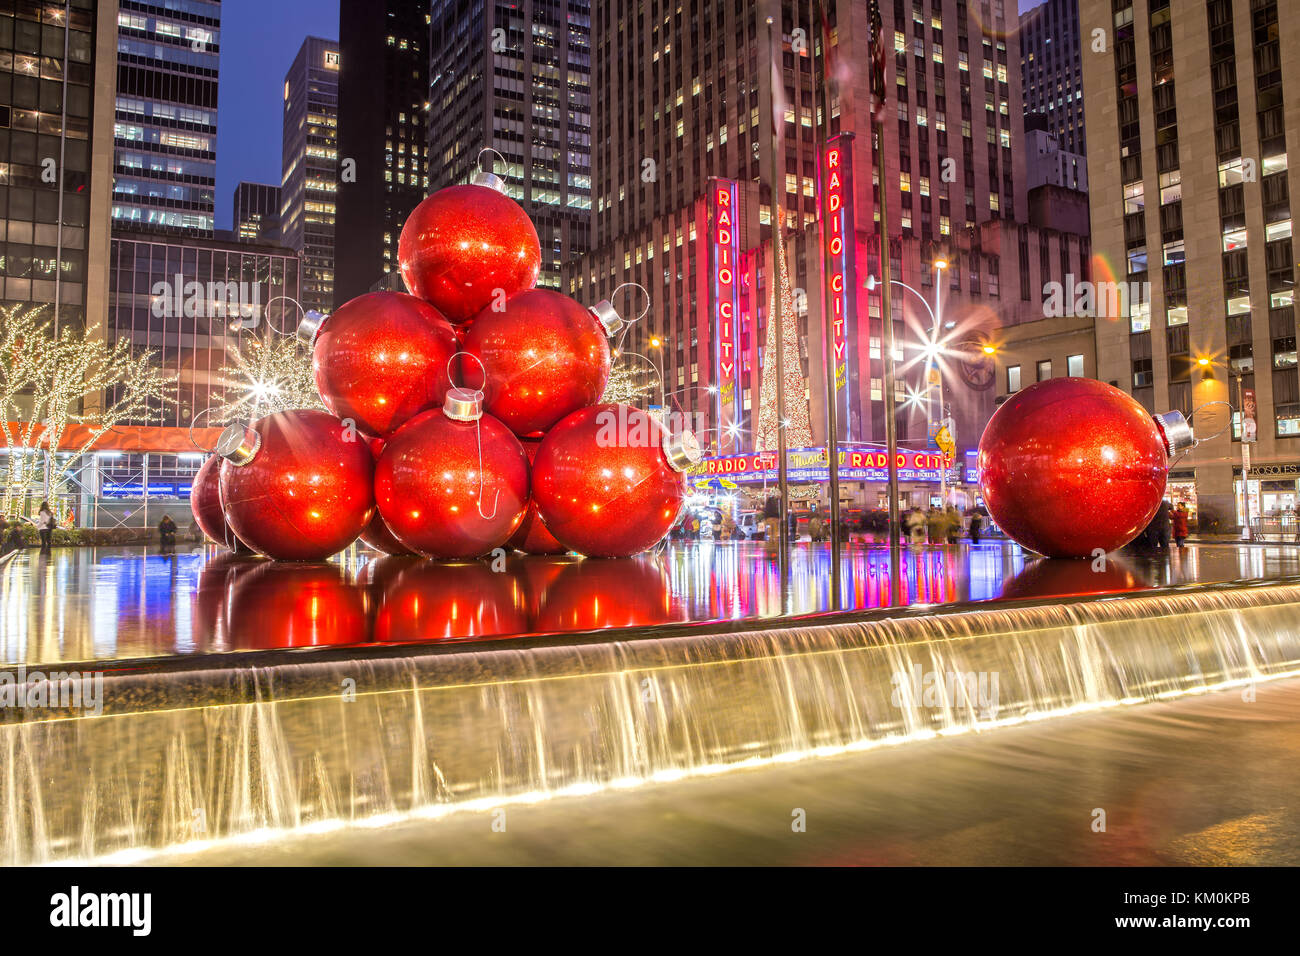 Christmas Decoration in Midtown Manhattan New York City - Stock Image